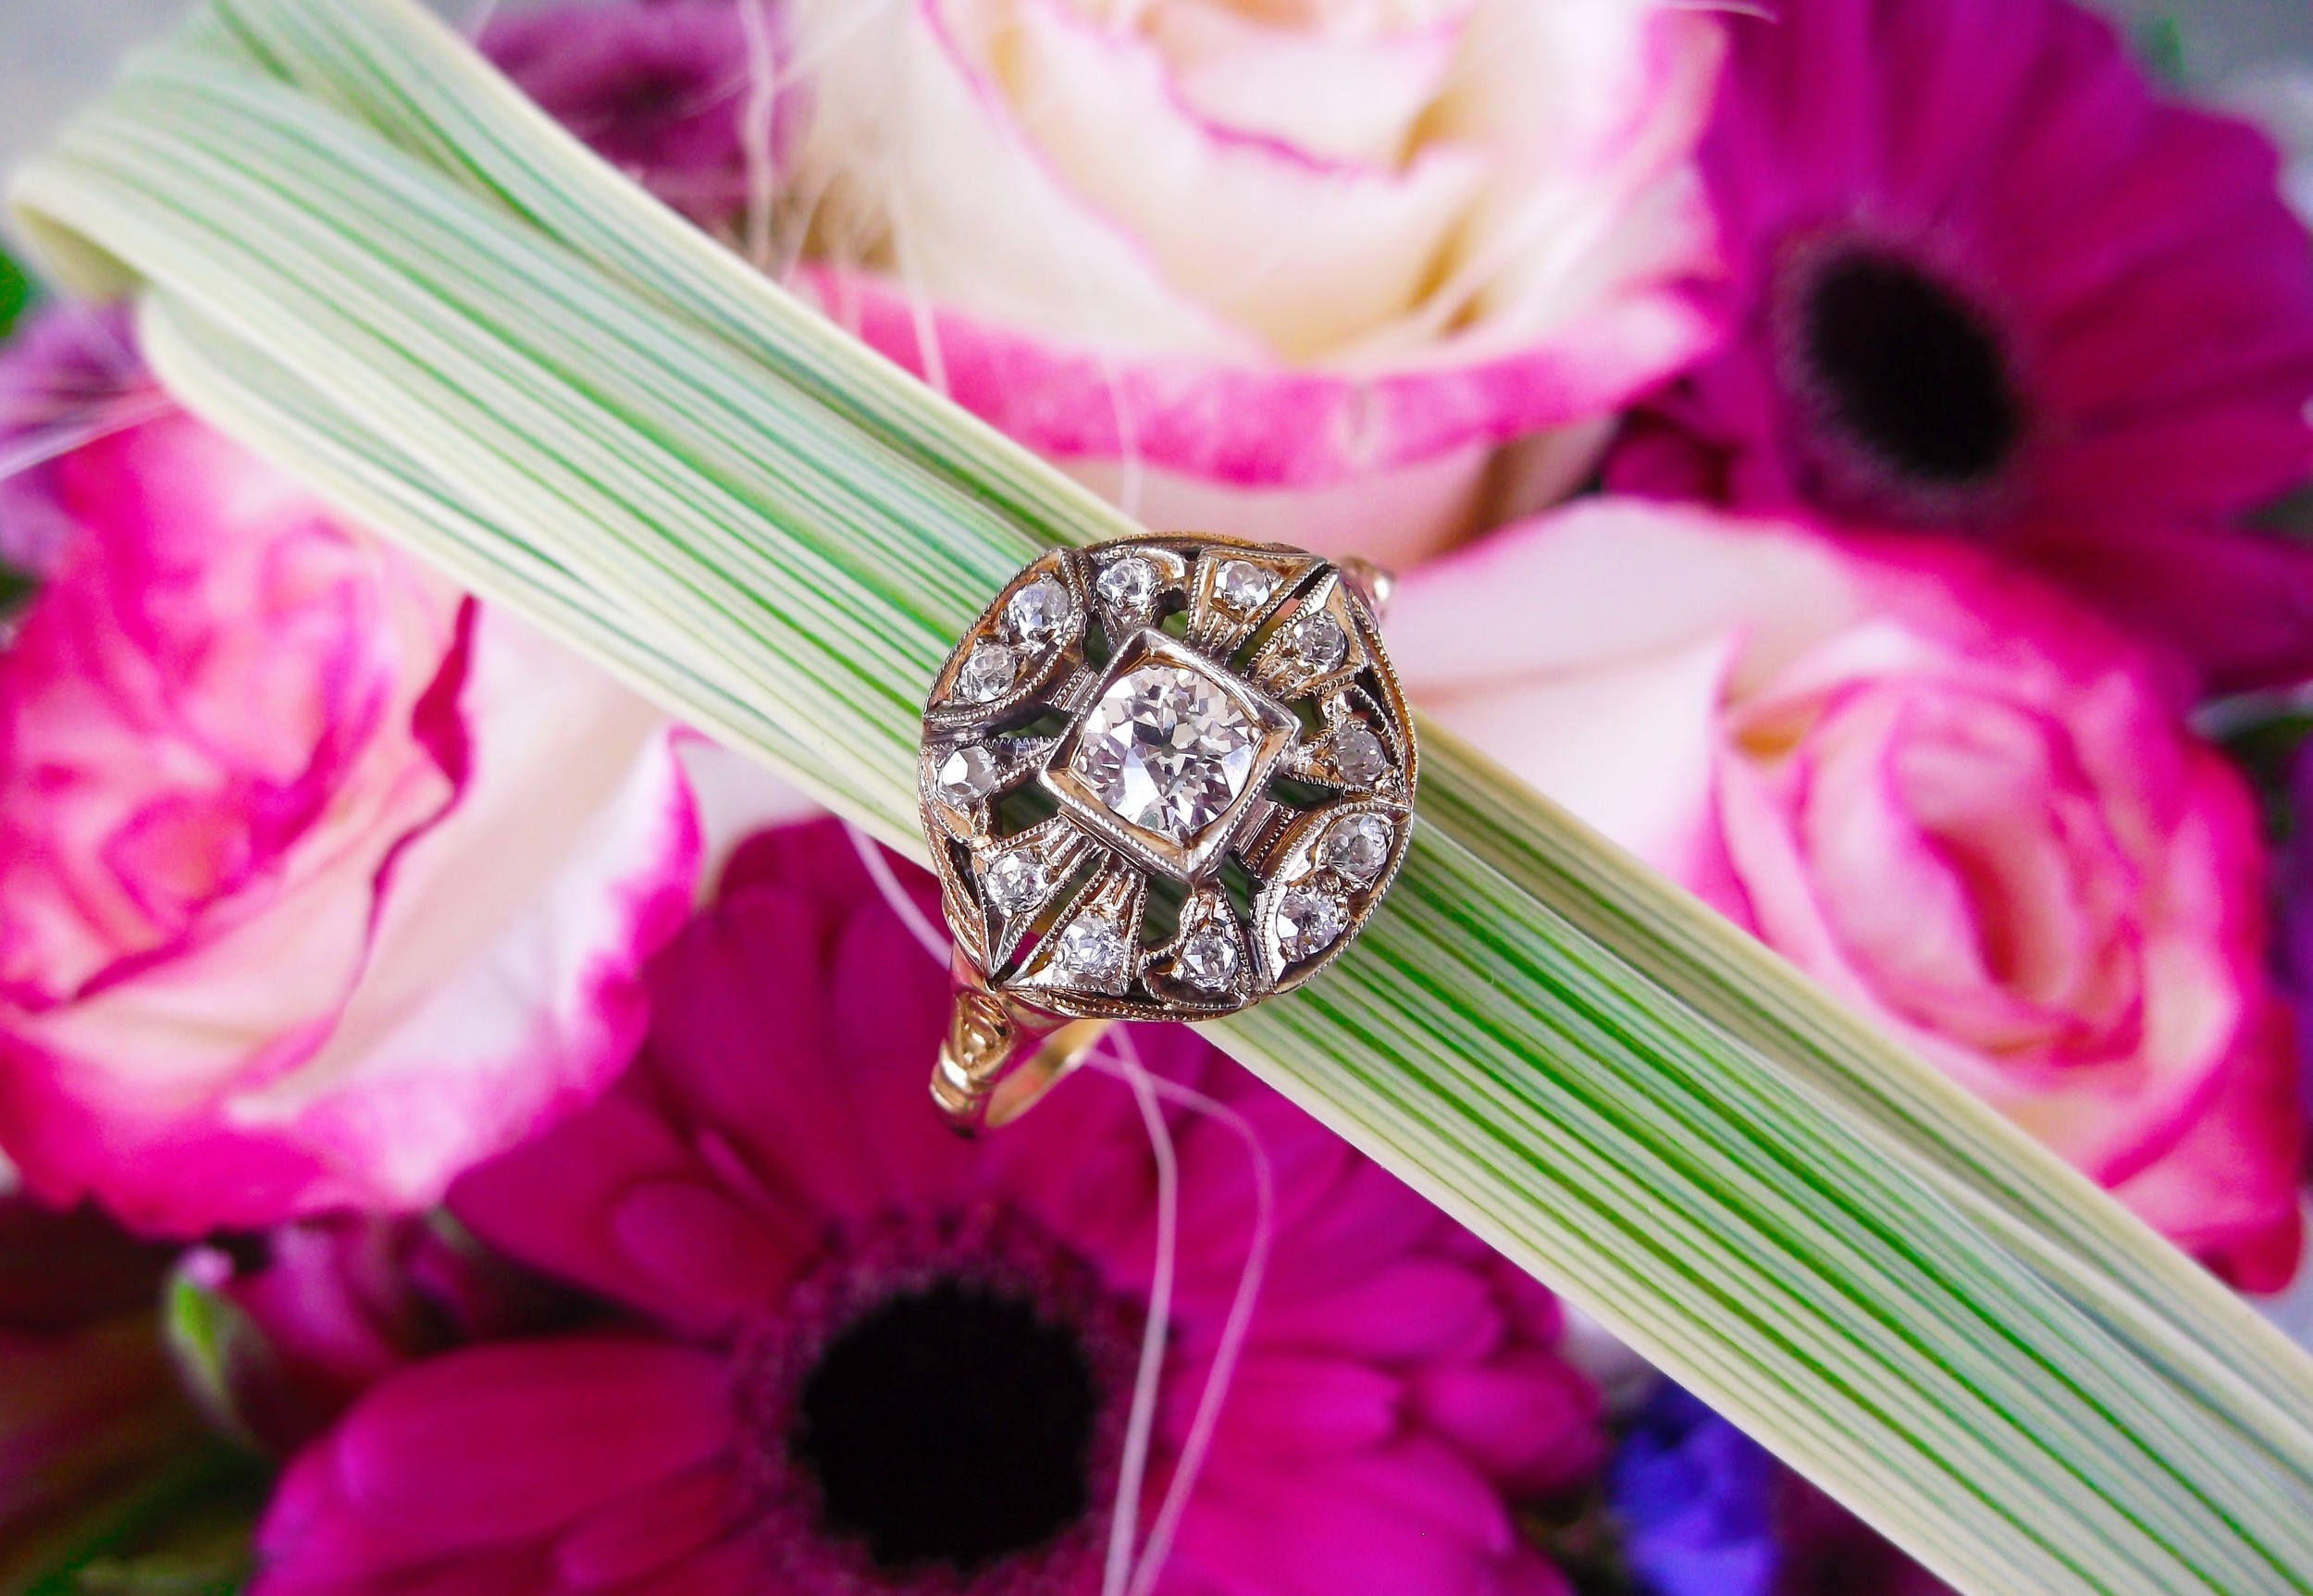 SOLD - All original Victorian Era diamond and yellow gold ring with a 0.30 carat Old Mine cut diamond in the center.